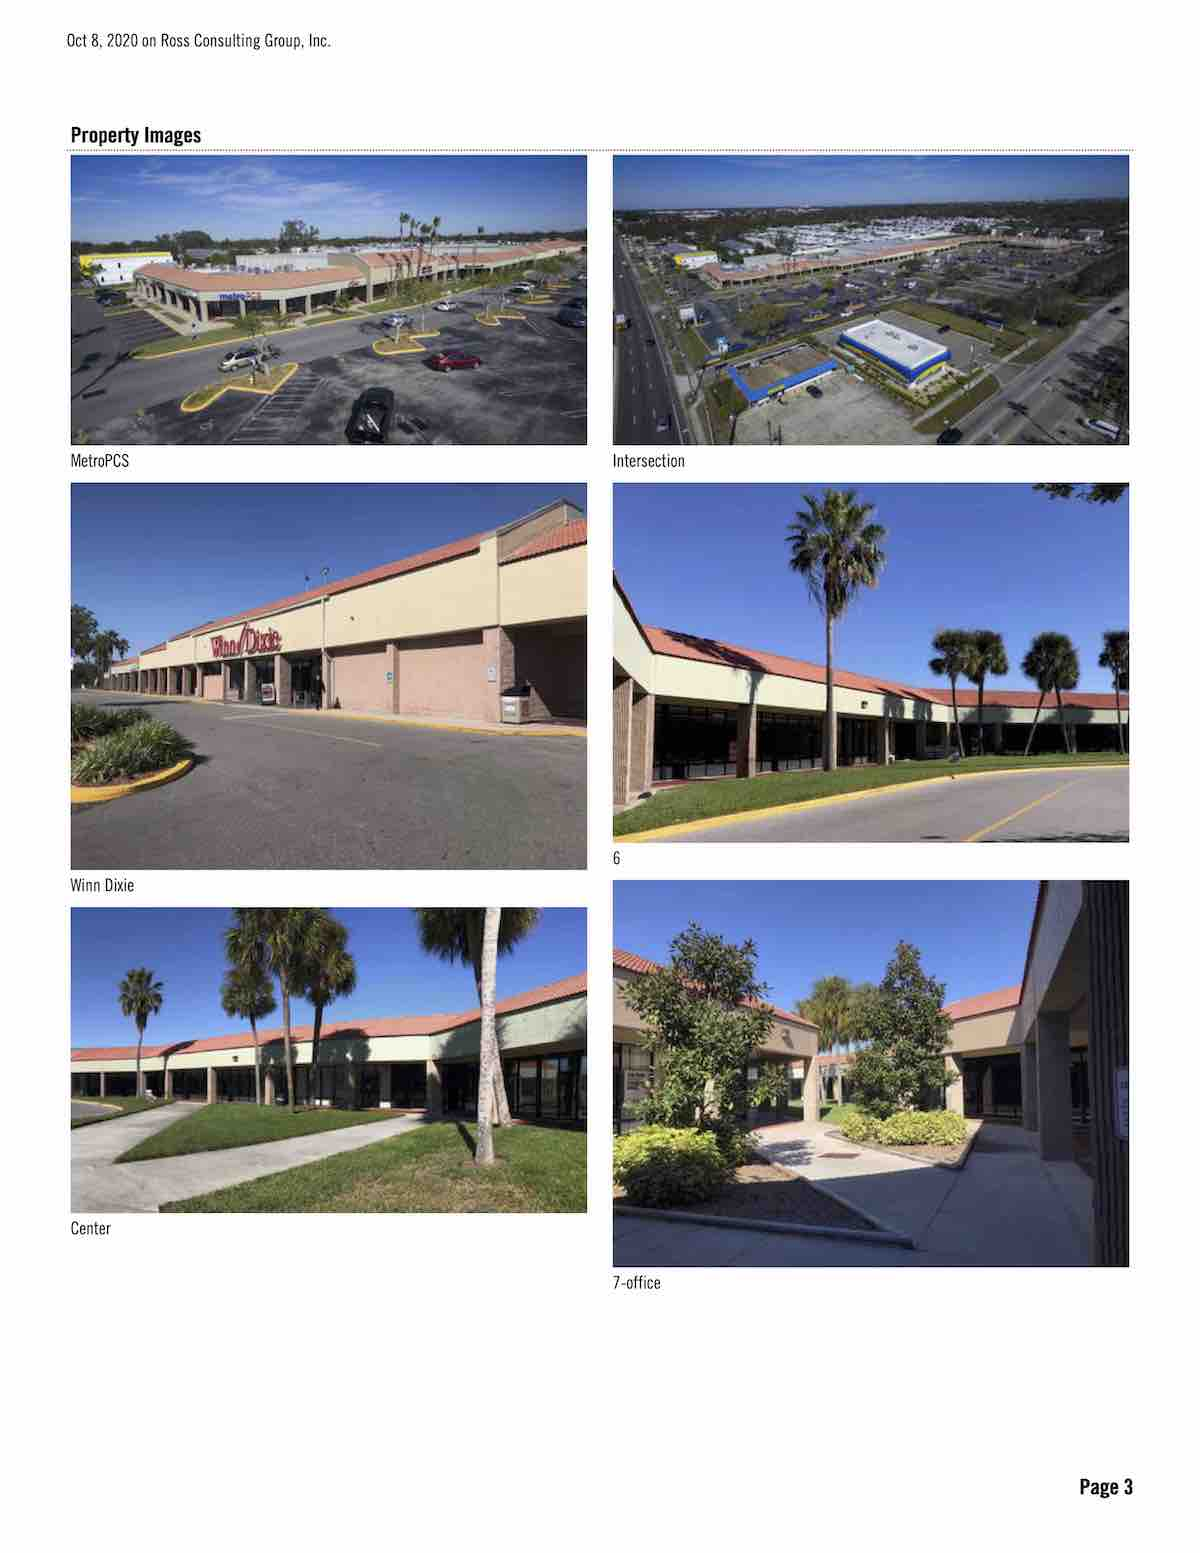 Tampa Commercial Real Estate - FOR LEASE - Pinellas Place Shopping Center - 6501 102nd Ave N, Pinellas Park, FL 33782 P3